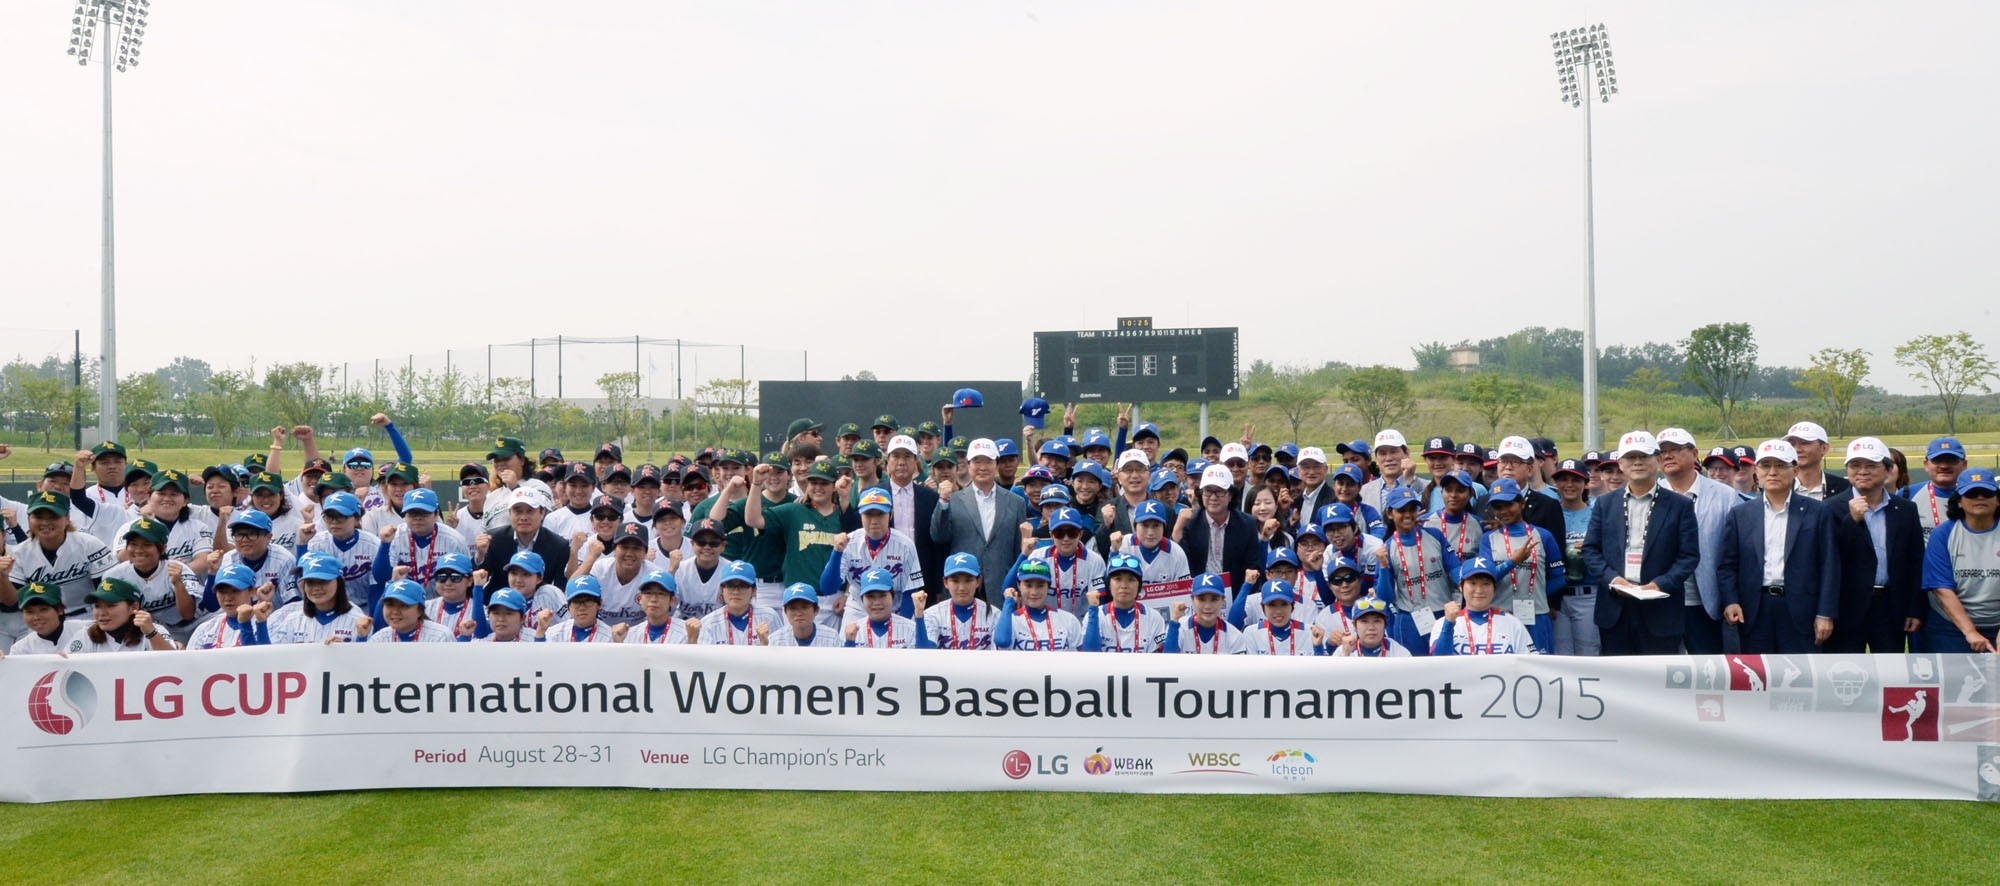 The eight teams represented in the tournament takes a commemorative picture.